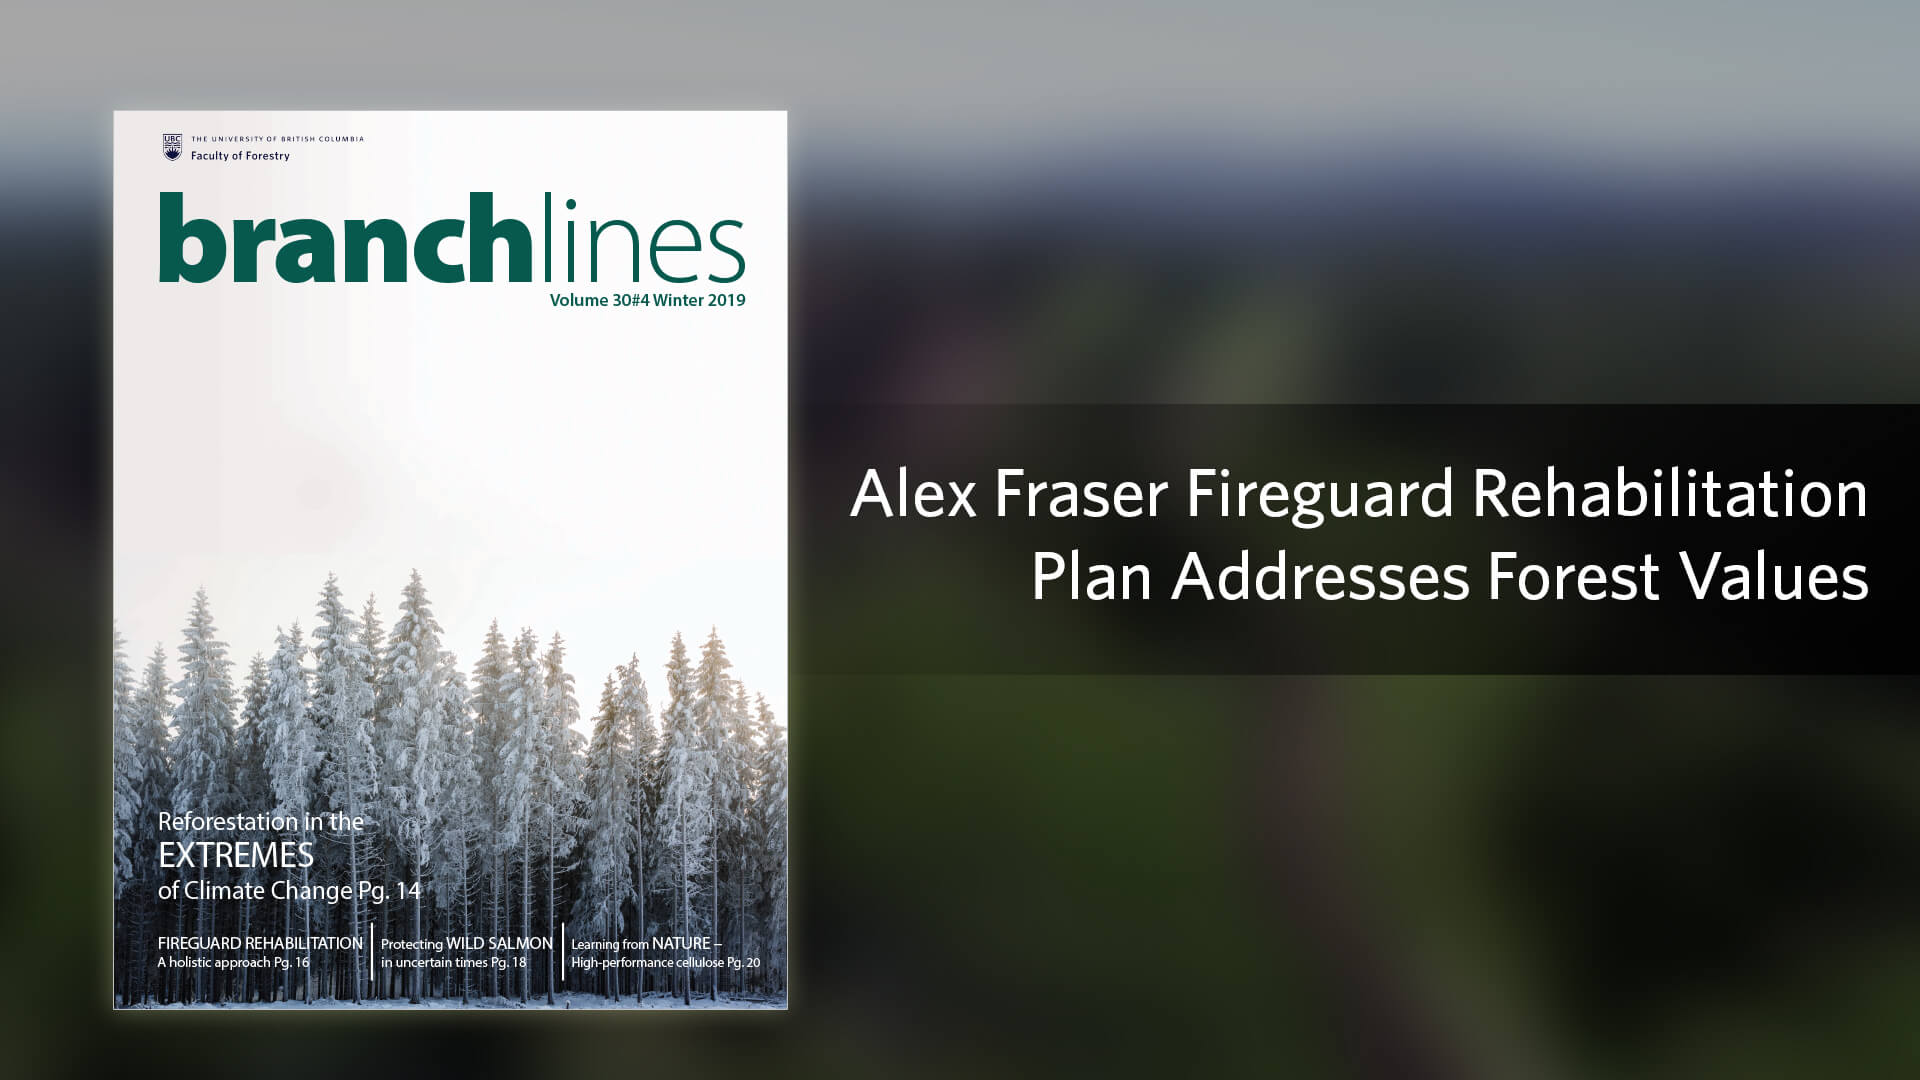 Alex Fraser Fireguard Rehabilitation Plan Addresses Forest Values